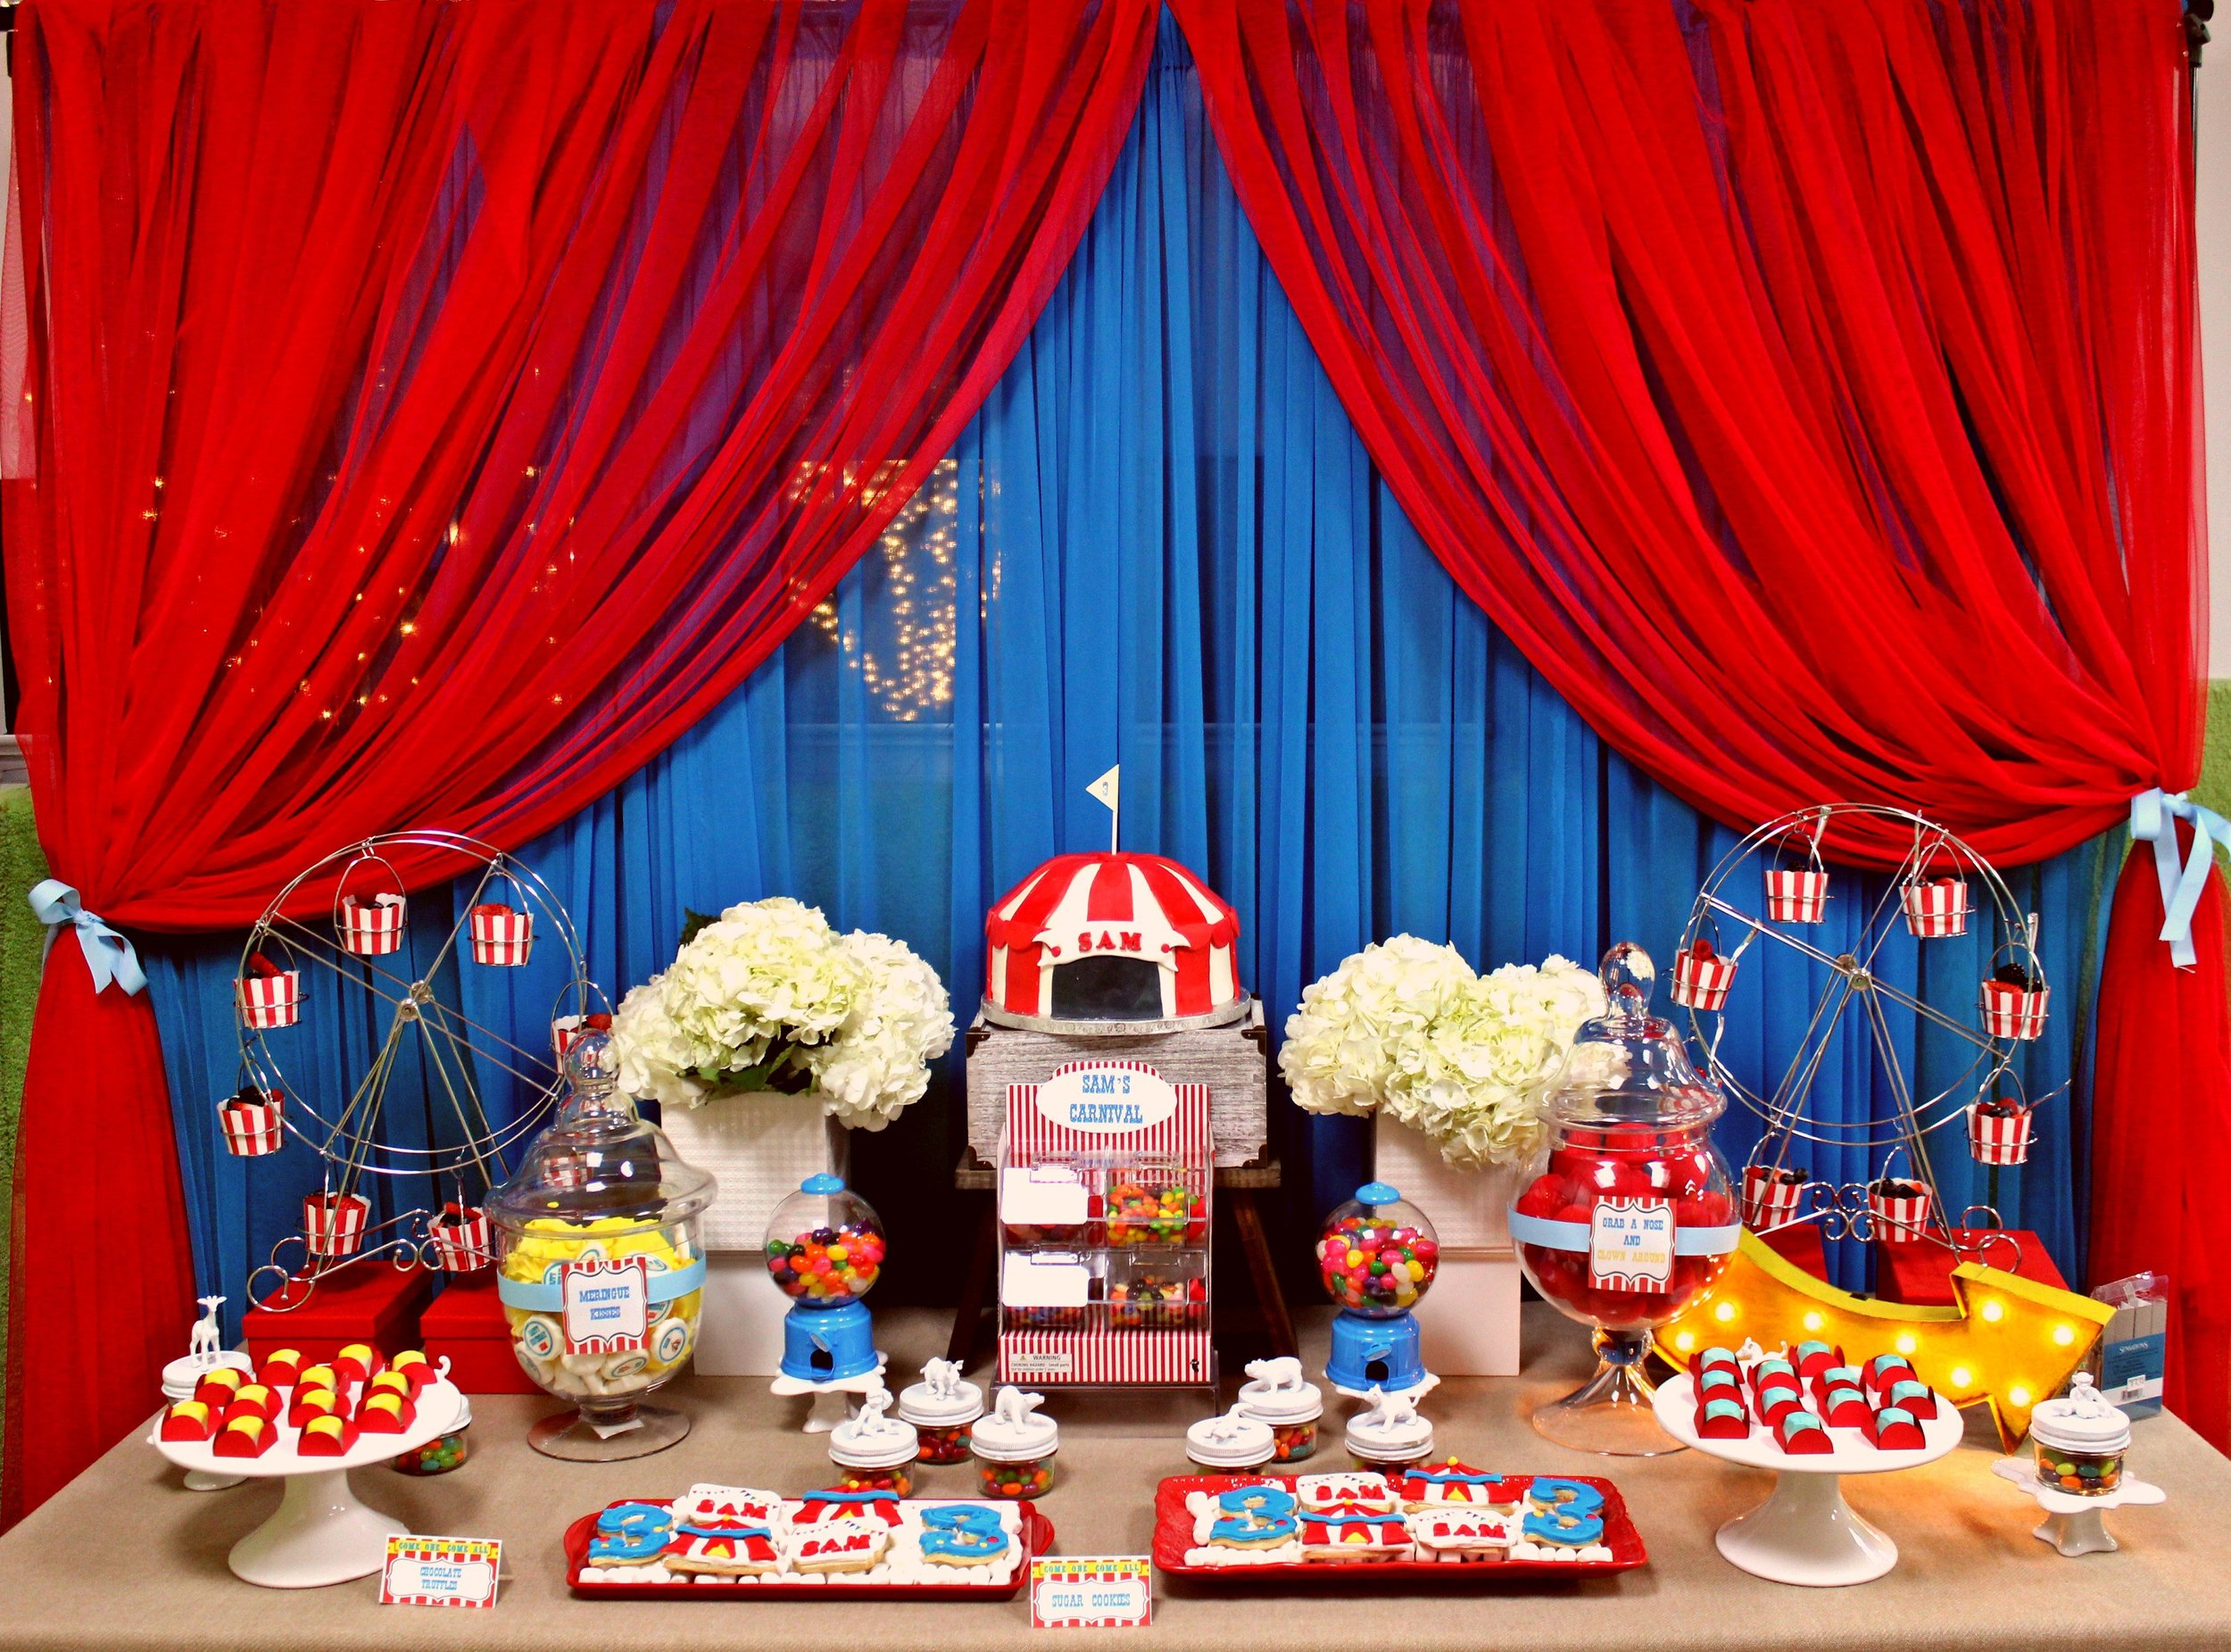 The sweet table!